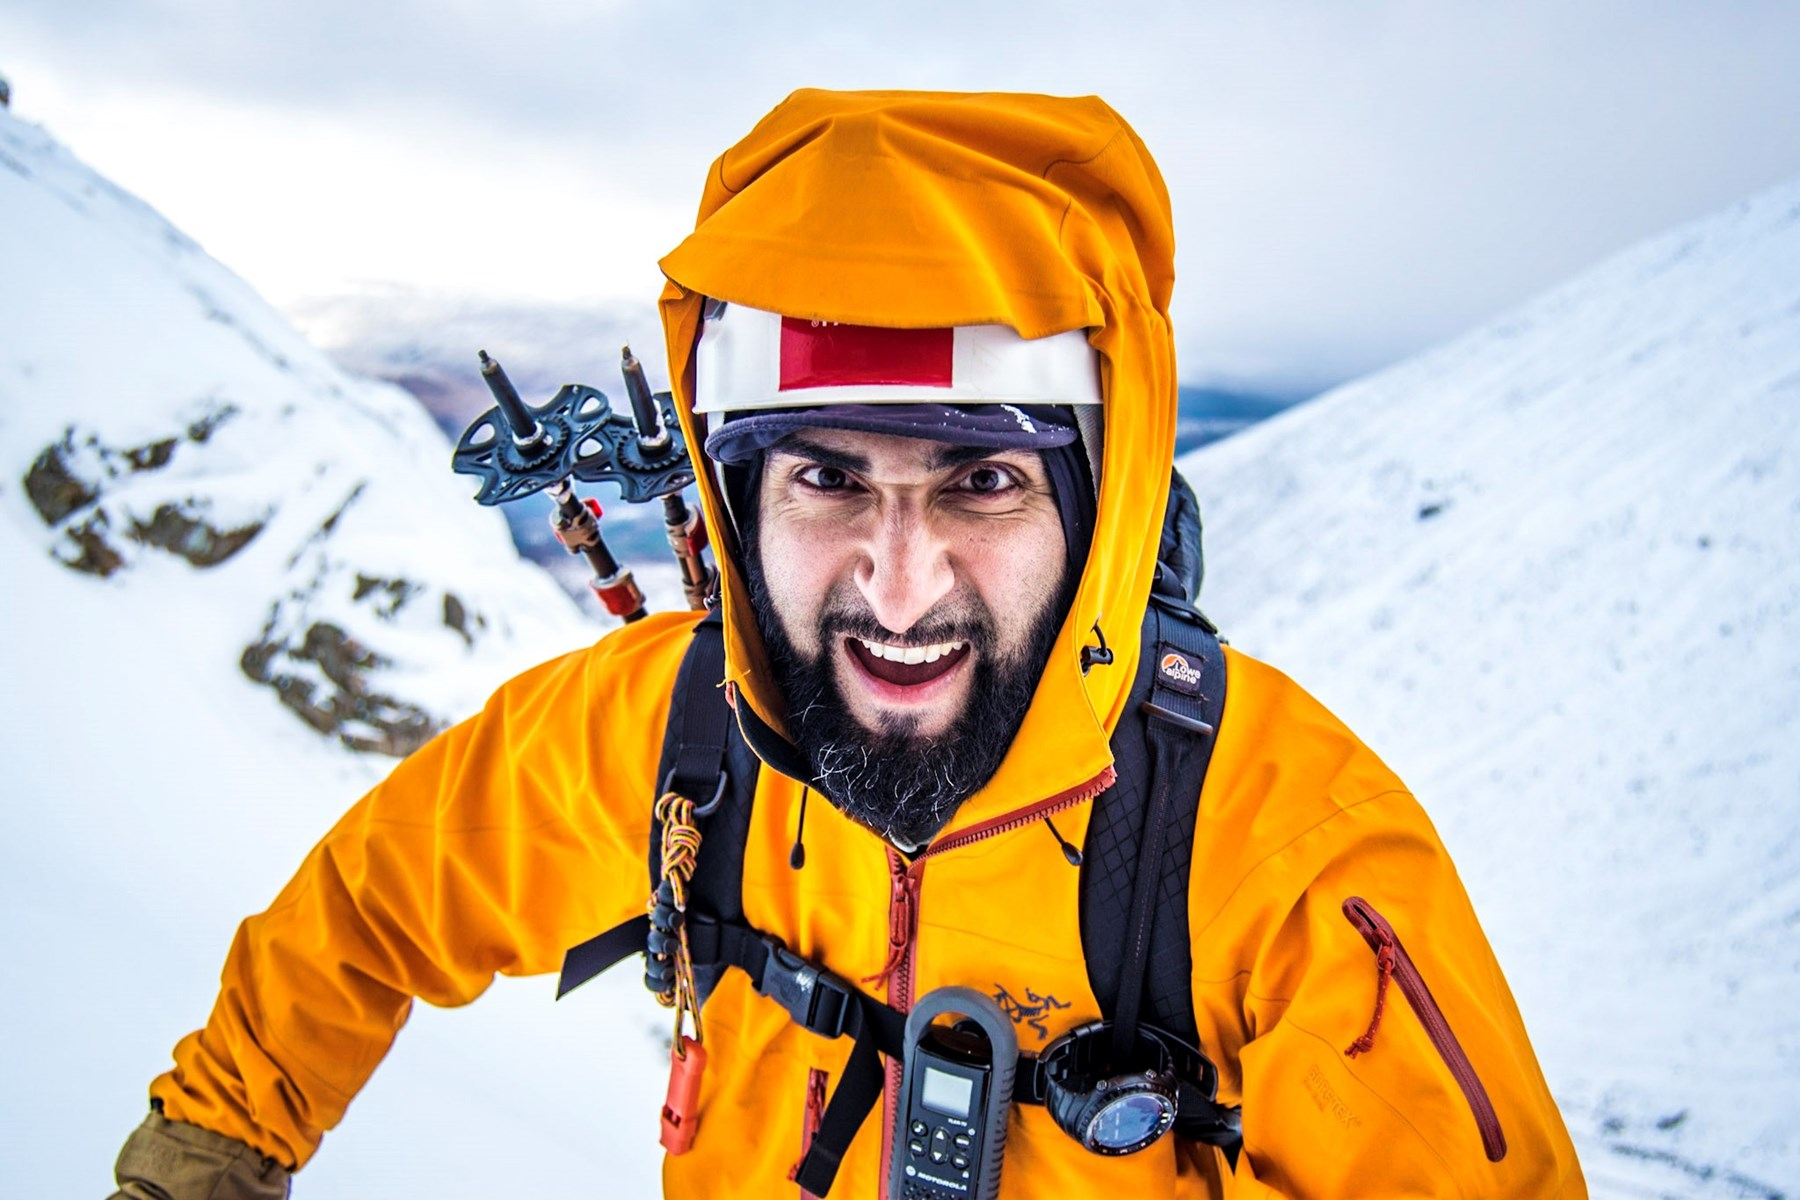 Mahroof smiling nearing a snow peaked summit